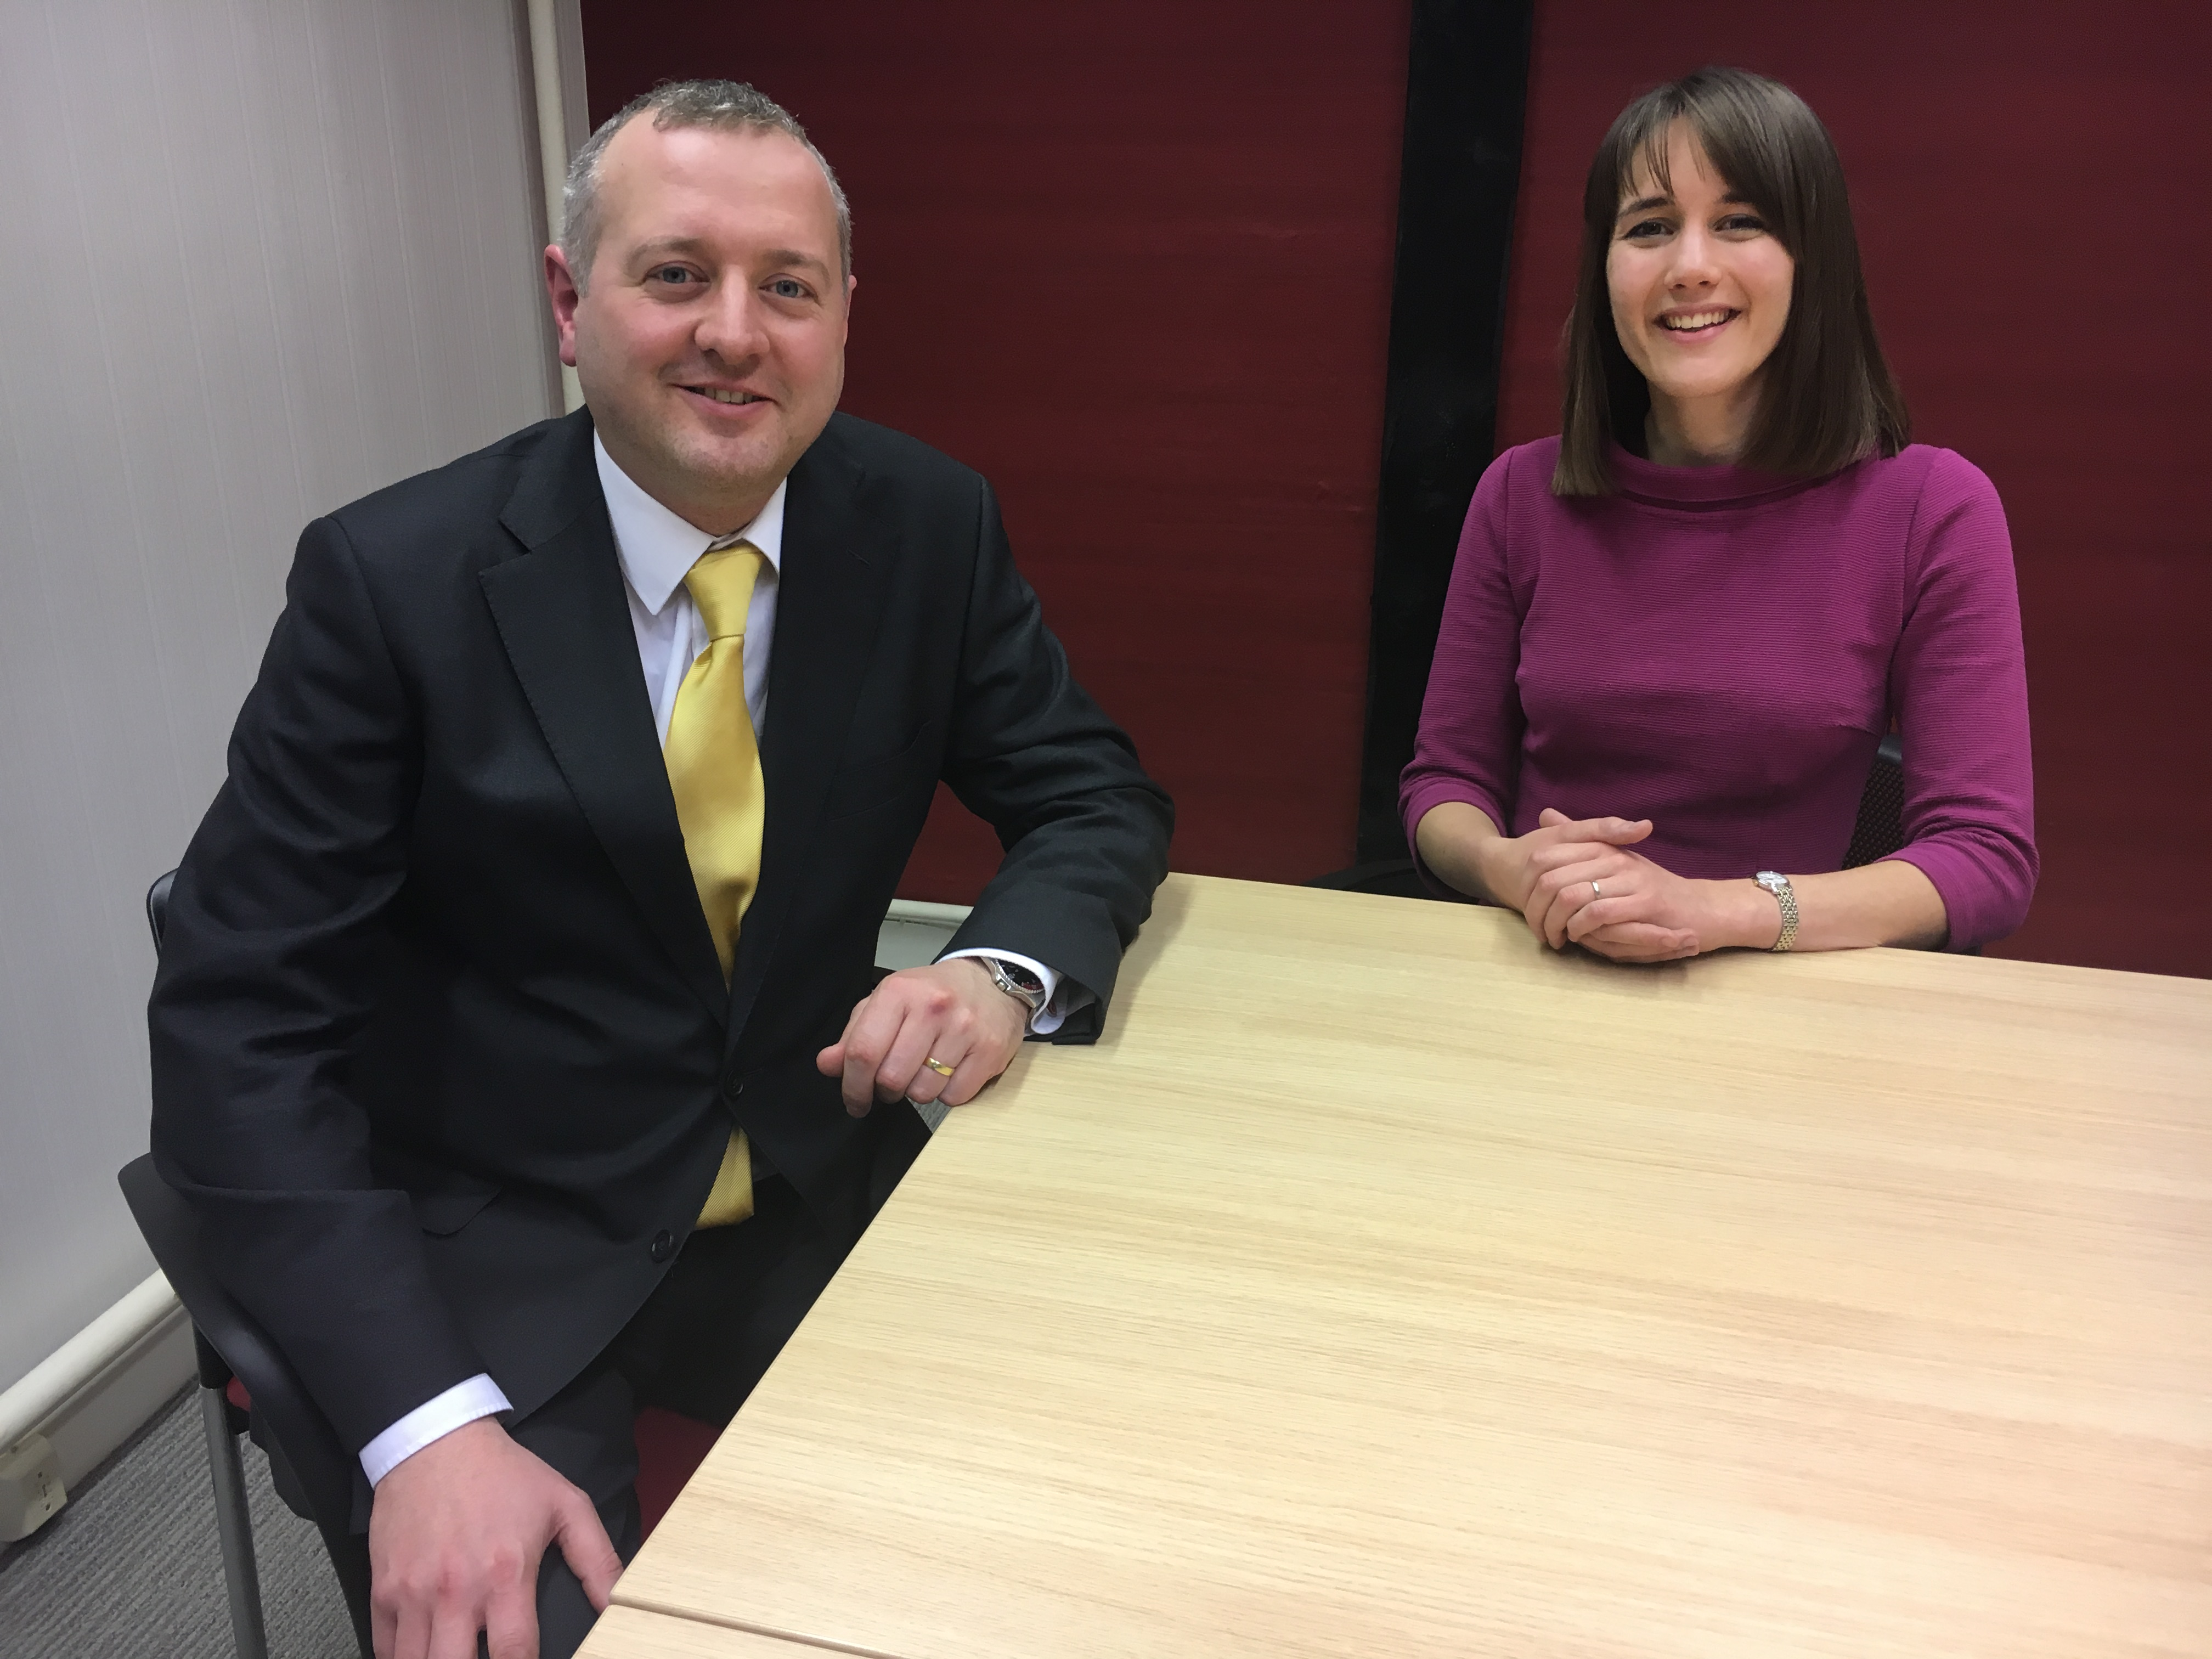 Solicitors Michael Large and Zoe Parker